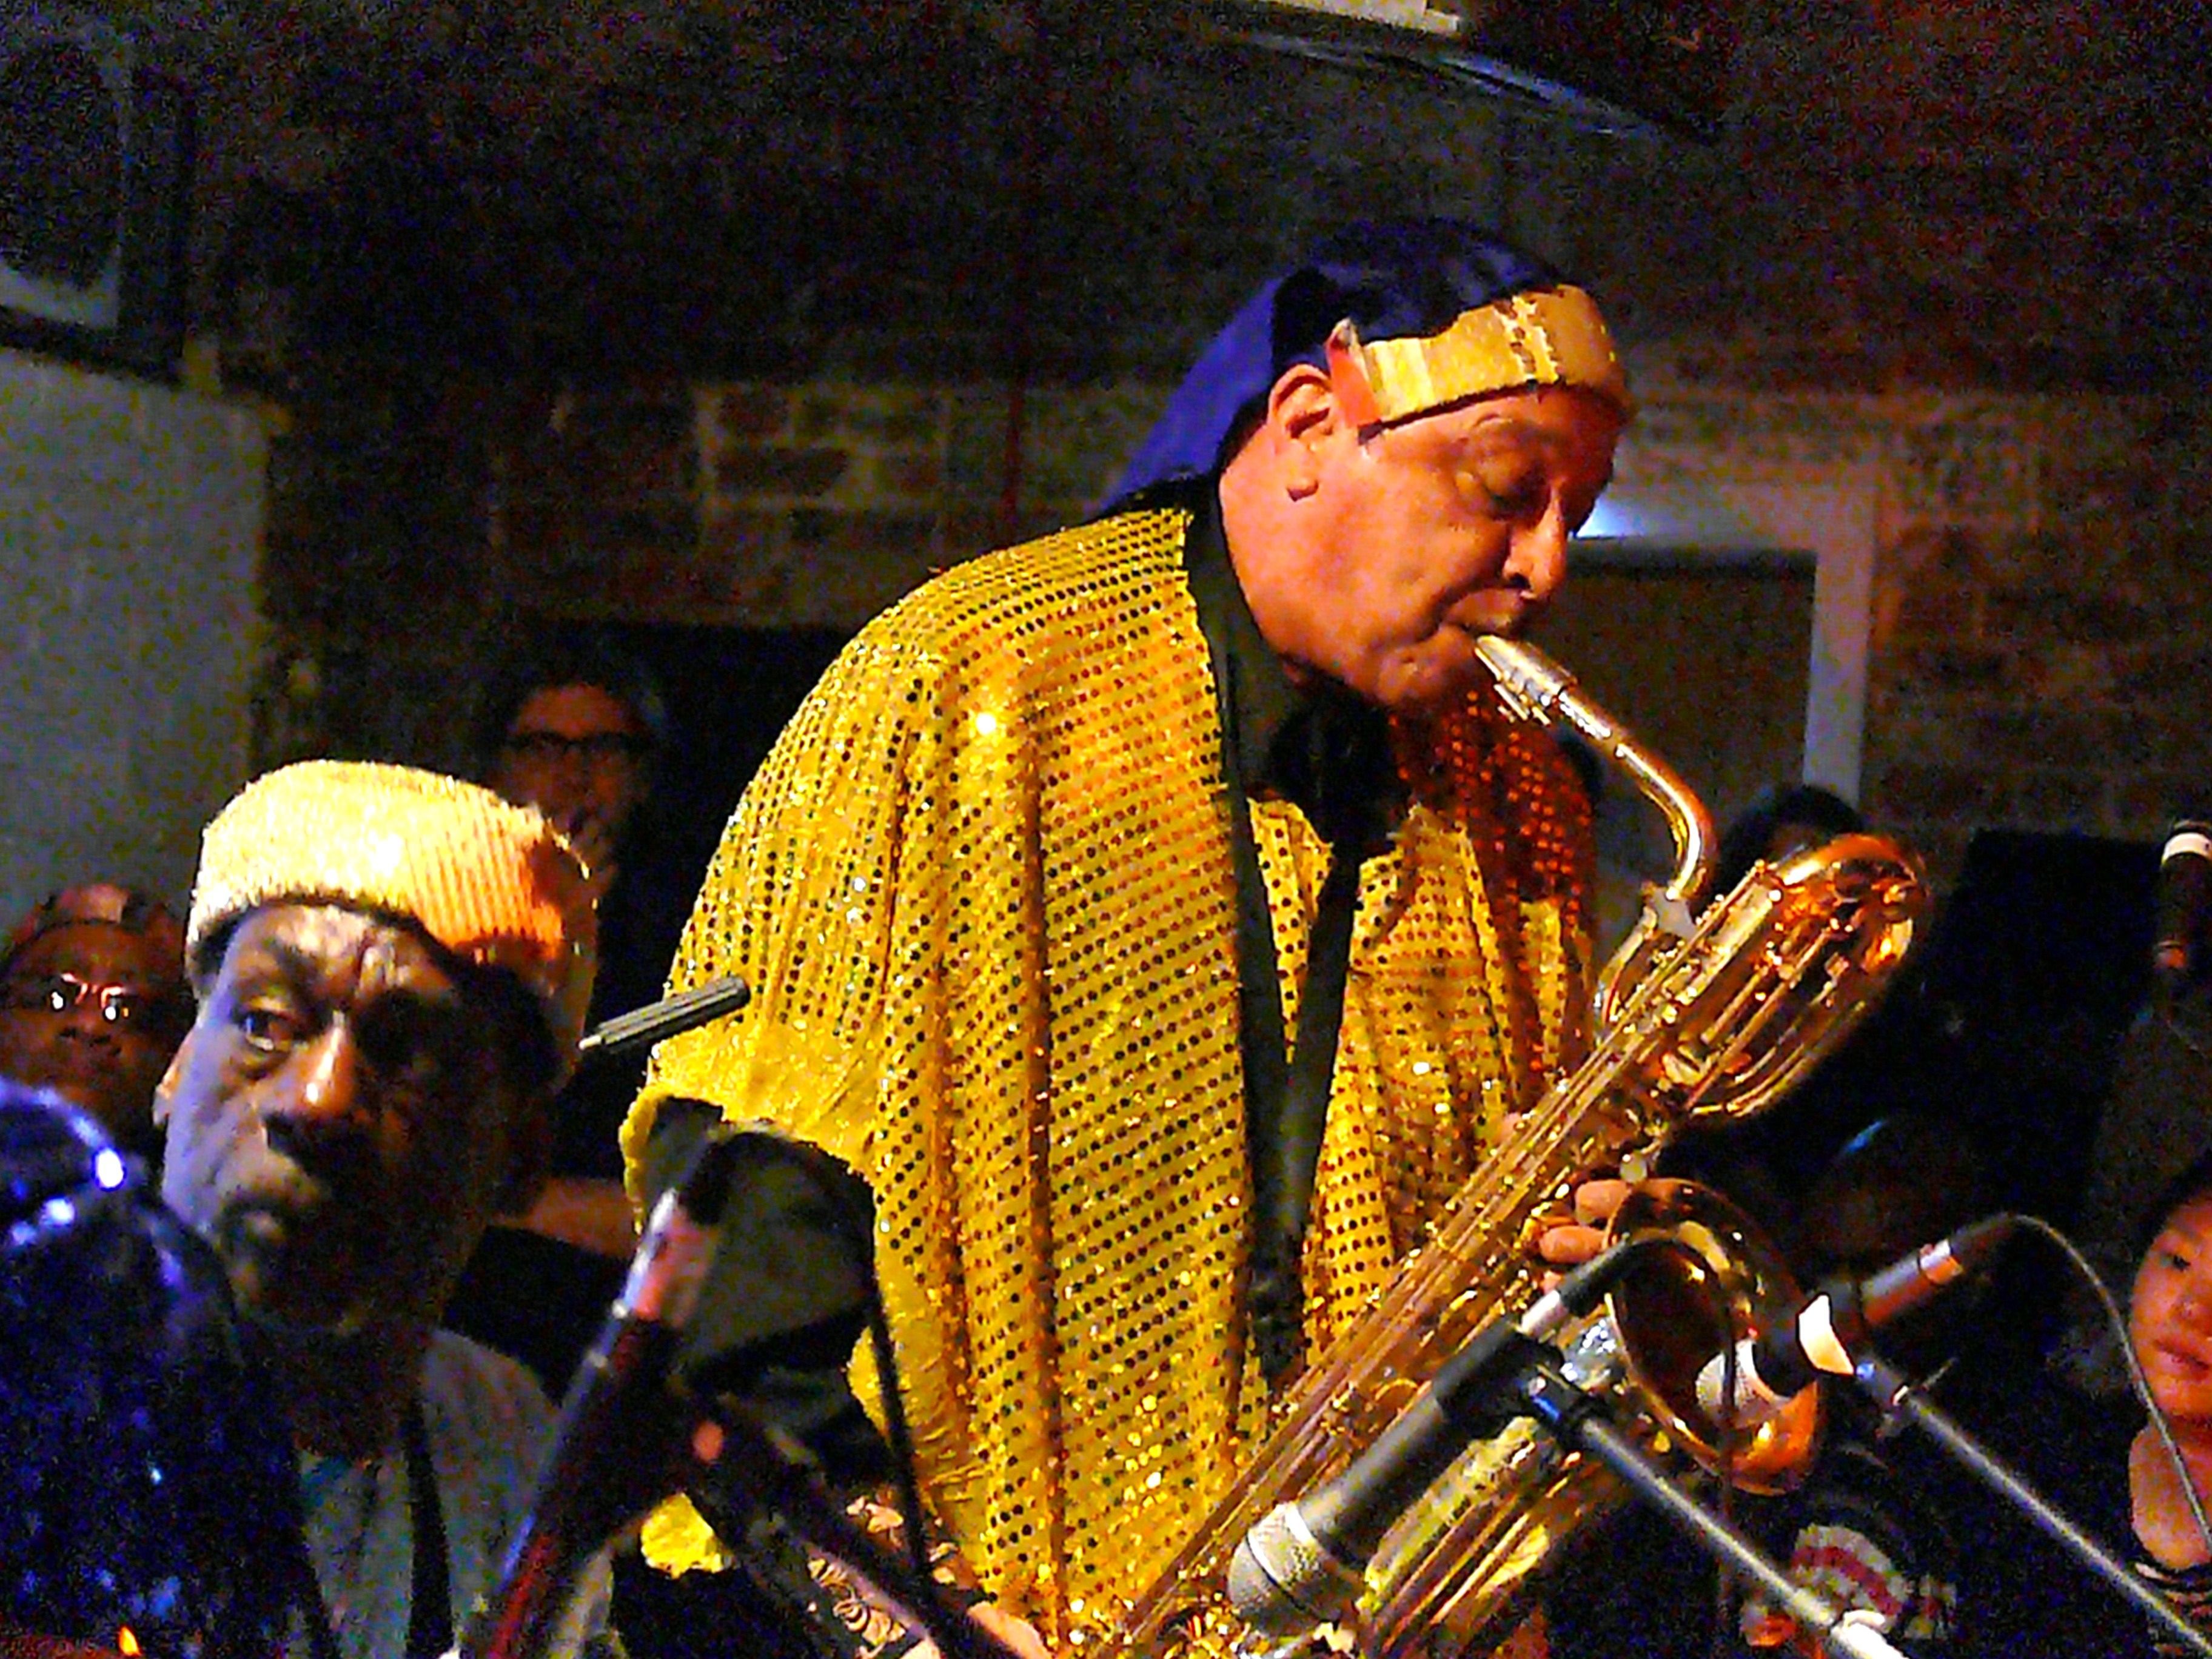 Danny Ray Thompson at Cafe Oto, London in April 2010 with the Sun Ra Arkestra